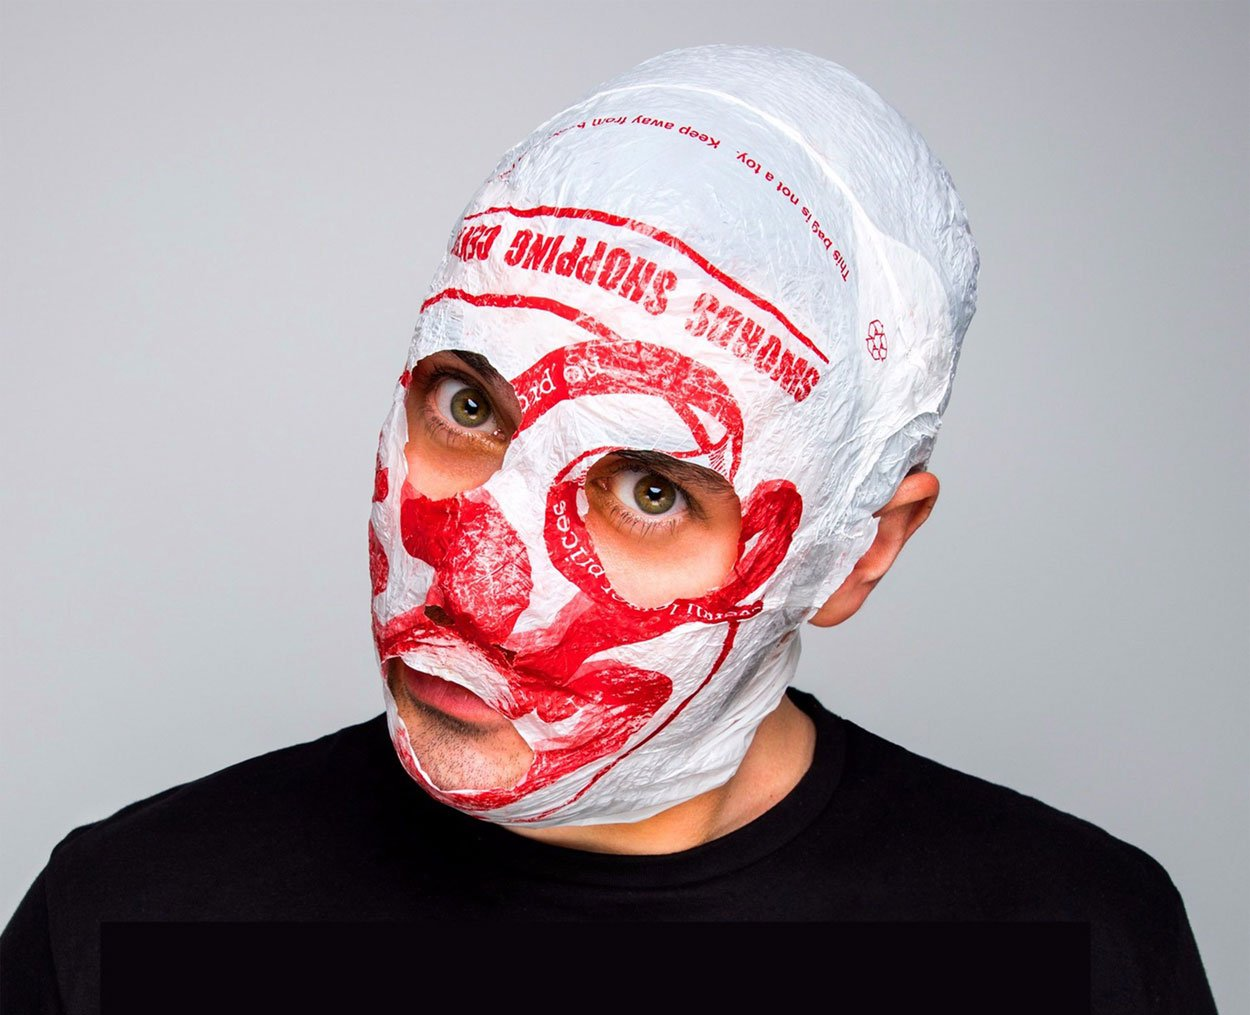 THE BLINDBOY PODCAST comes to Ulster Hall, Belfast on Thursday 23 April 2020